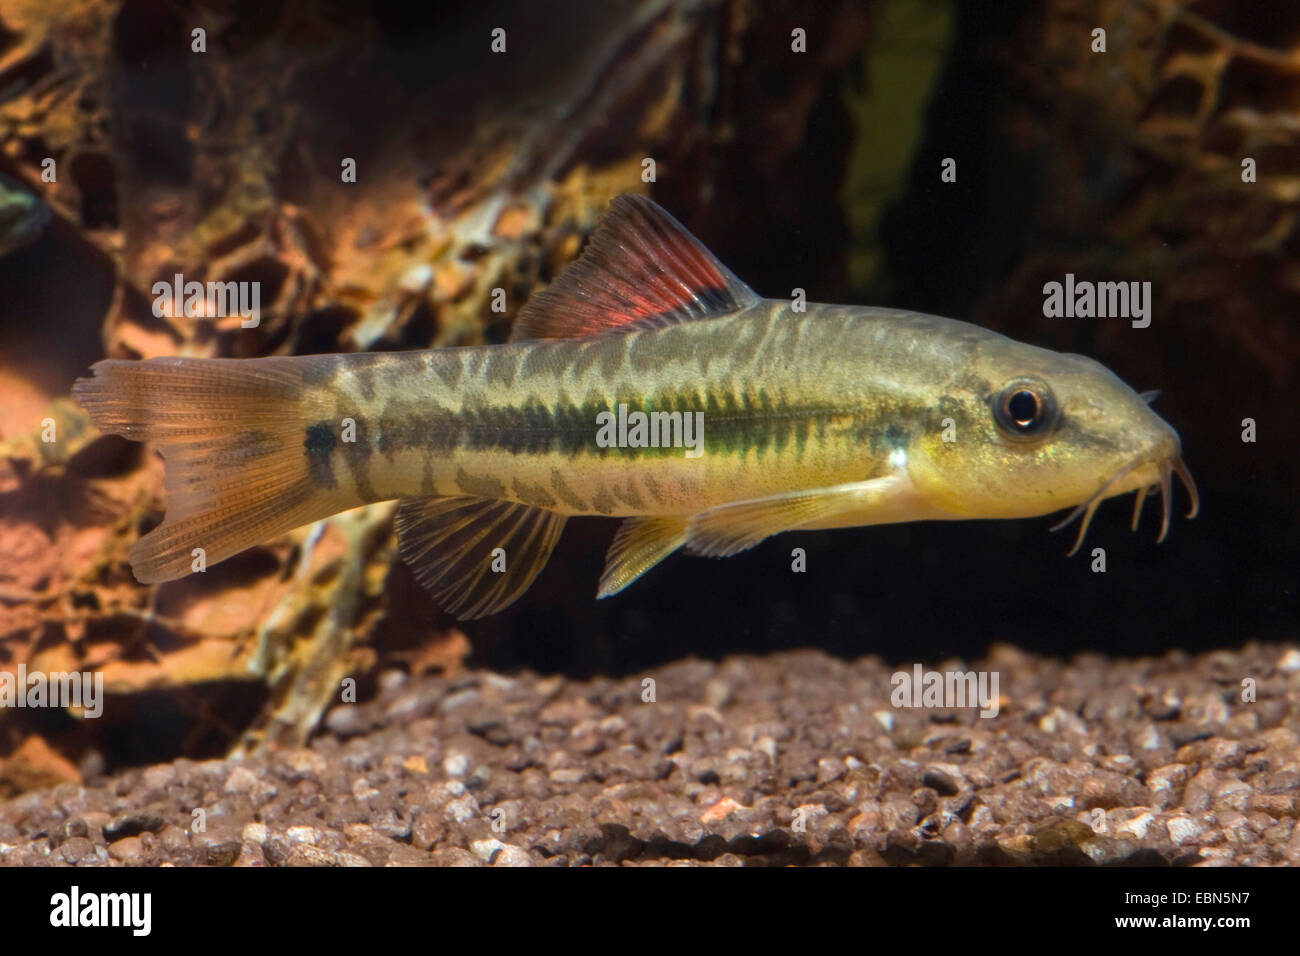 Rainbow Loach (Traccatichthys pulcher), swimming - Stock Image